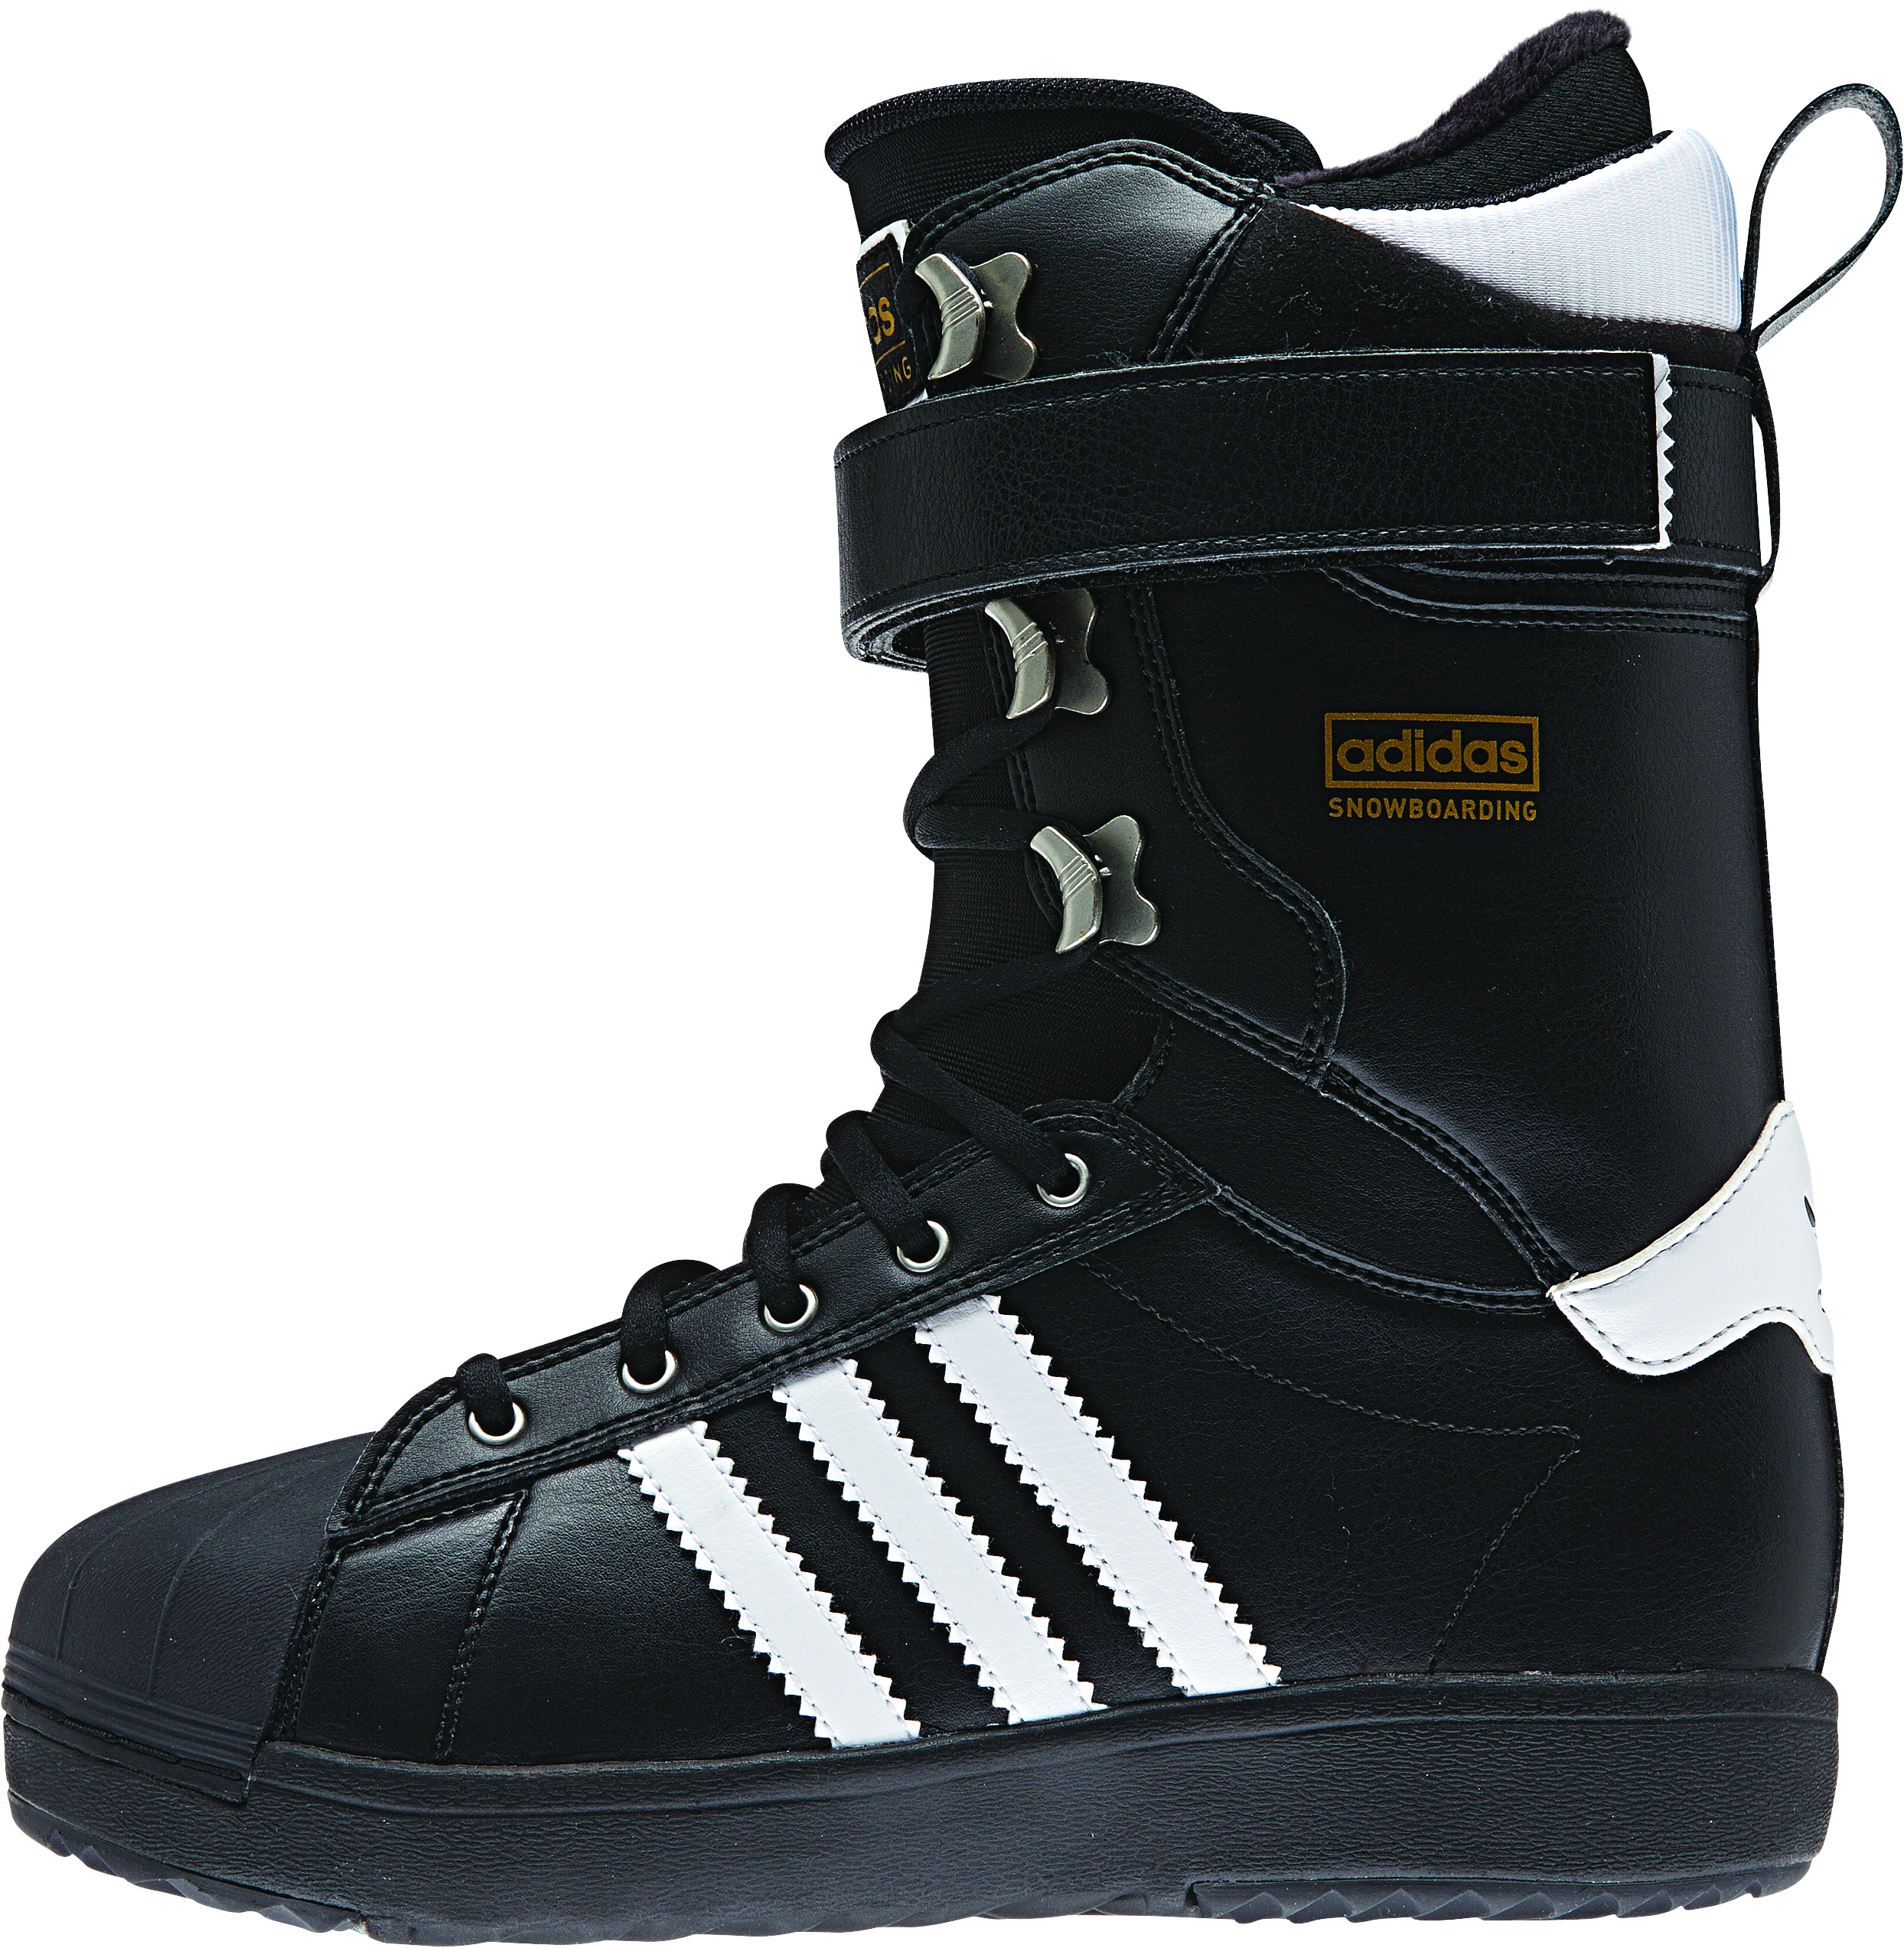 Adidas Superstar Snow Boots, $300